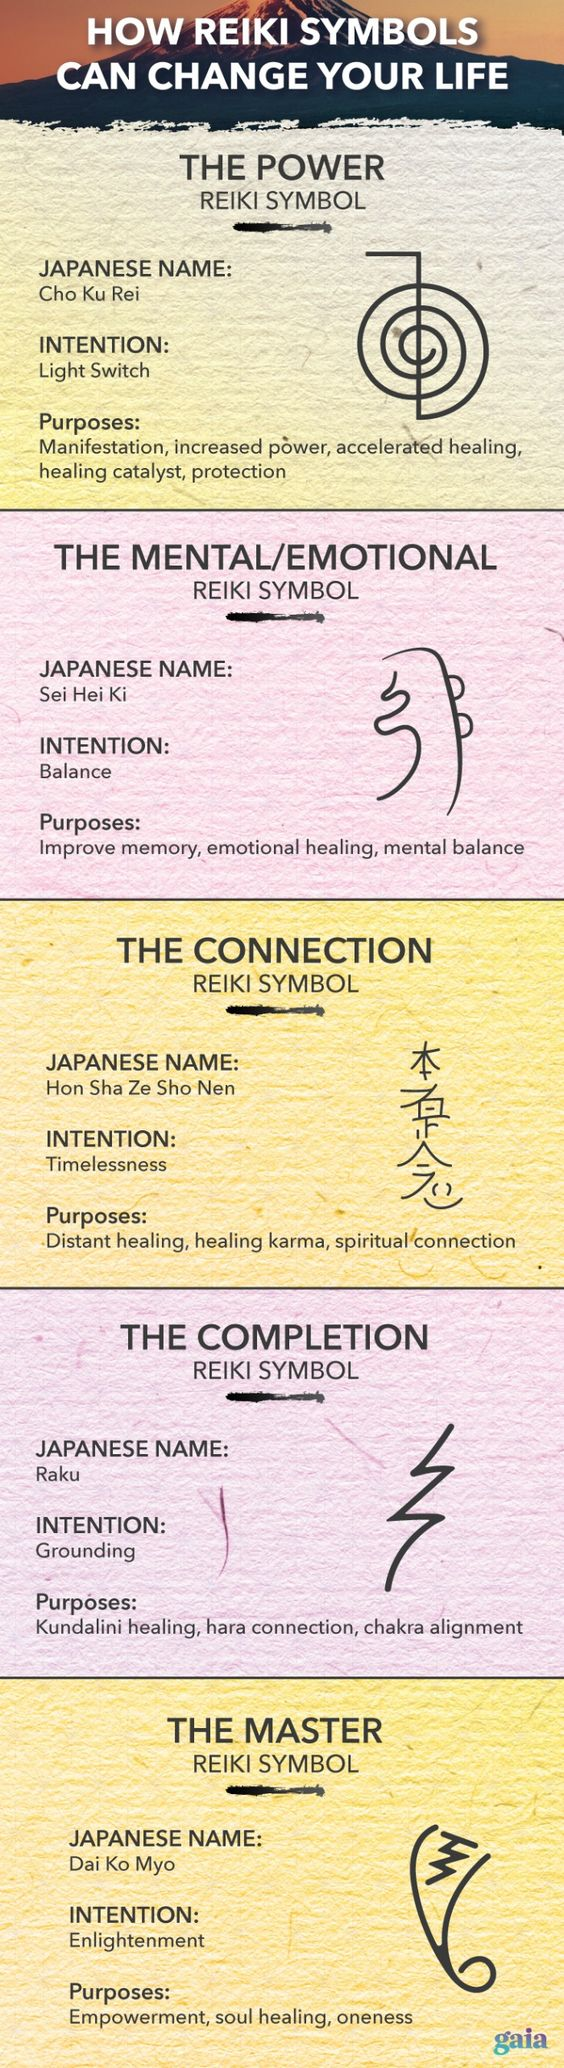 Marin reiki marin marketing offers i found reiki after i was in a car accident at 22 years old i was seeing a chiropractor three times a week for two years after owing thousands of dollars biocorpaavc